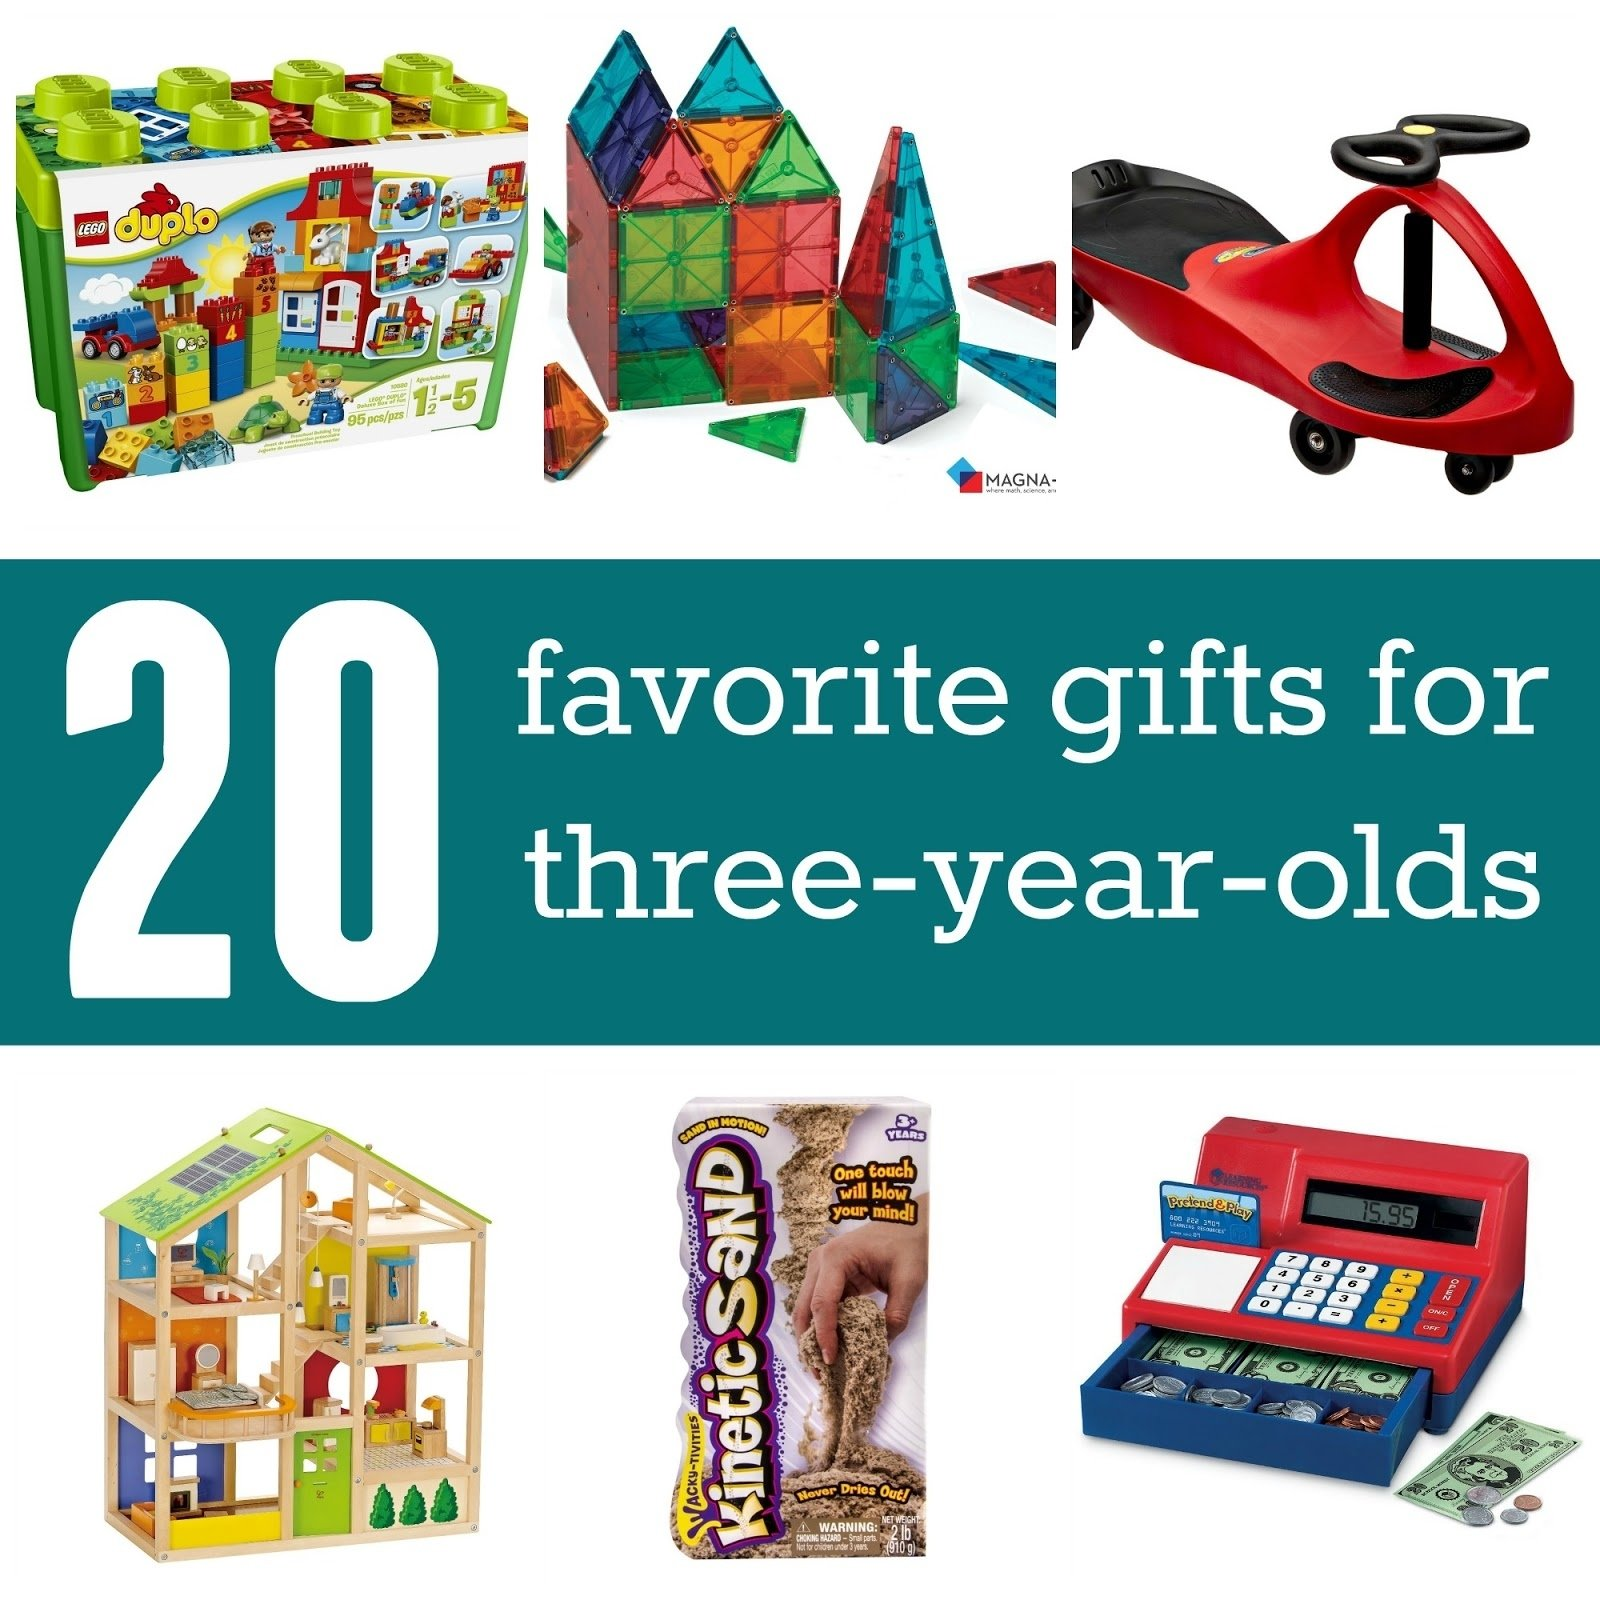 10 Fabulous Gift Ideas For A 3 Year Old toddler approved favorite gifts for 3 year olds 1 2020